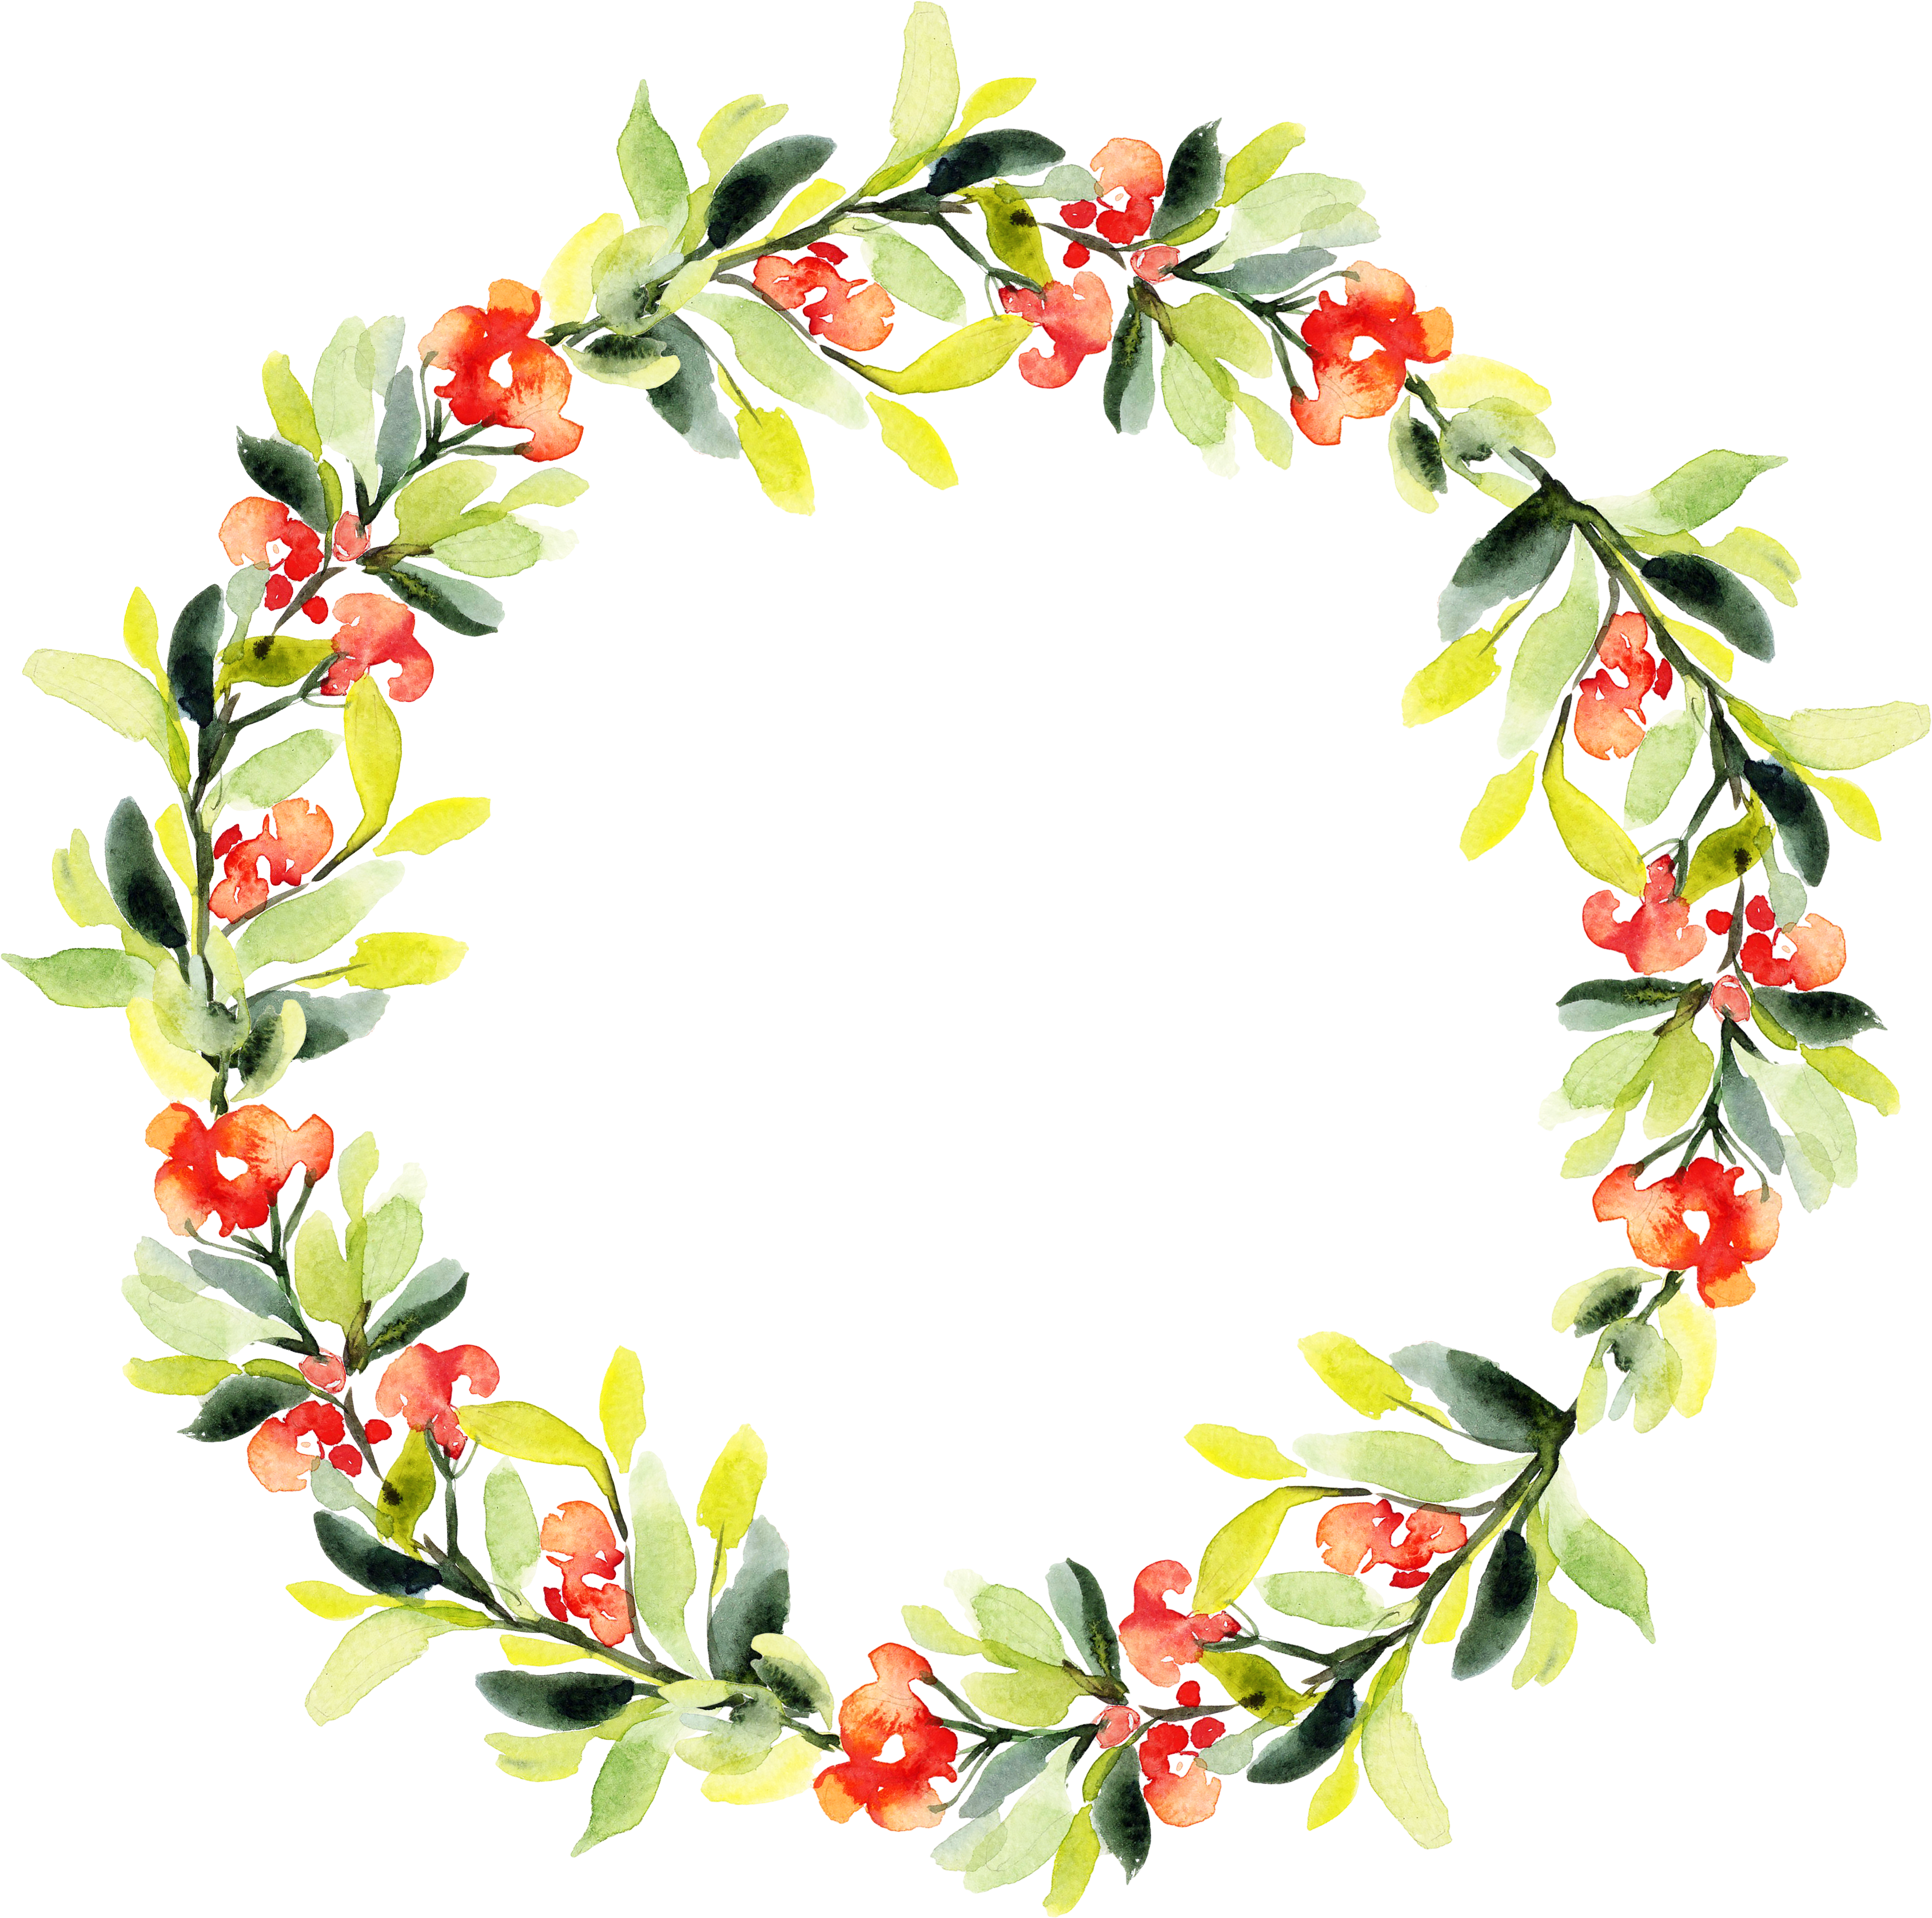 svg free download Floral design Garland Watercolor painting